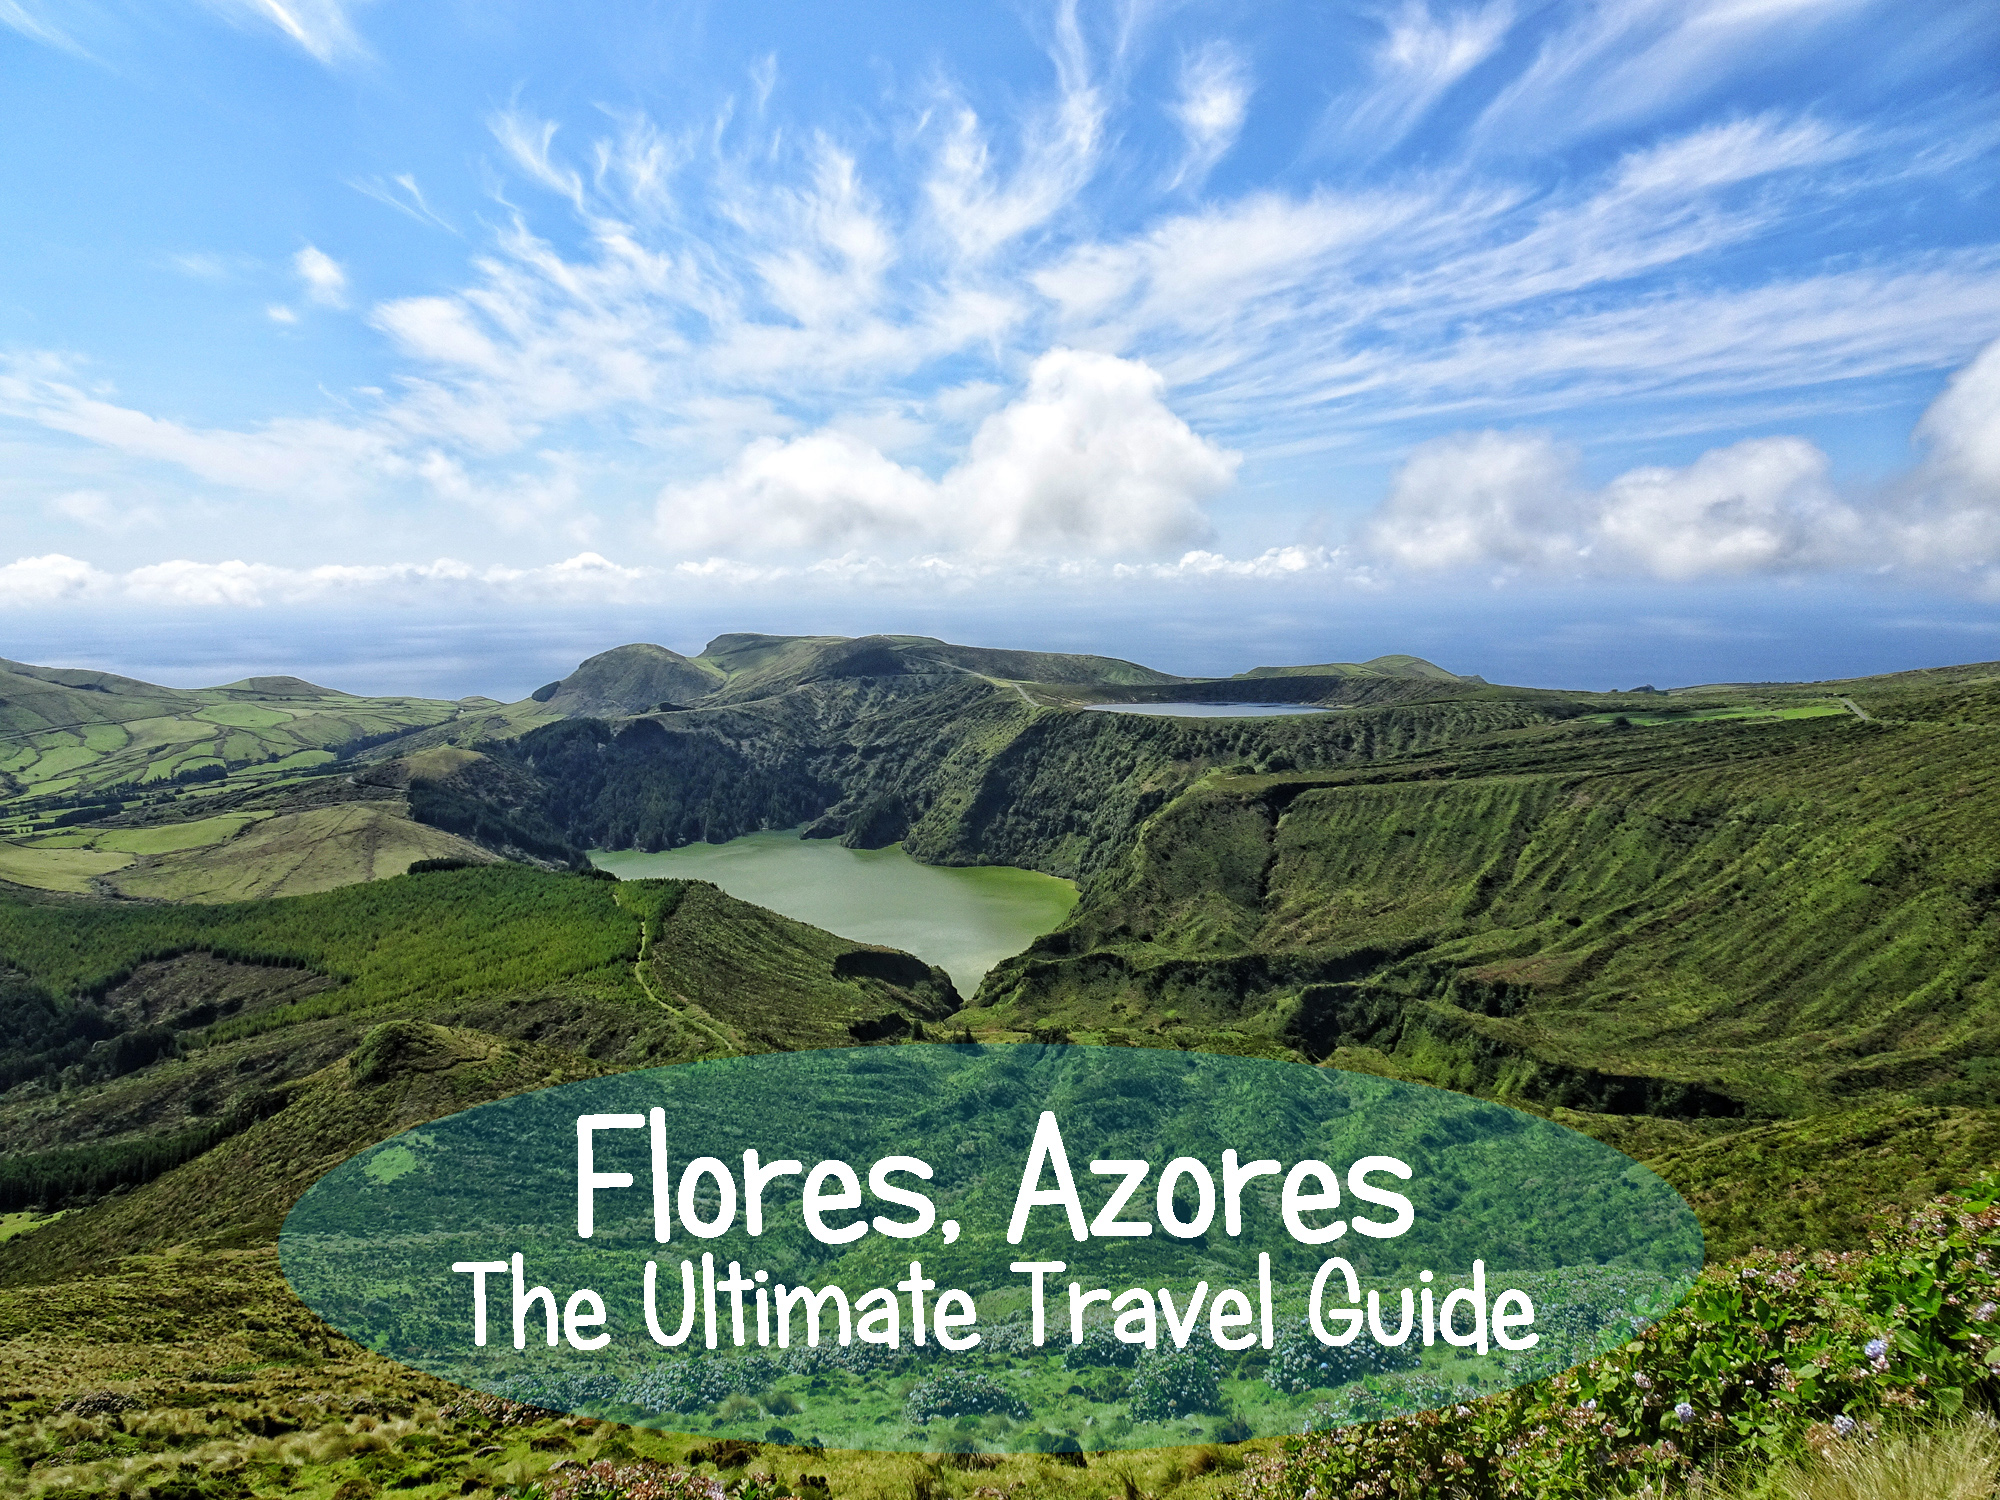 The Ultimate Travel Guide To Flores Azores World Wanderista